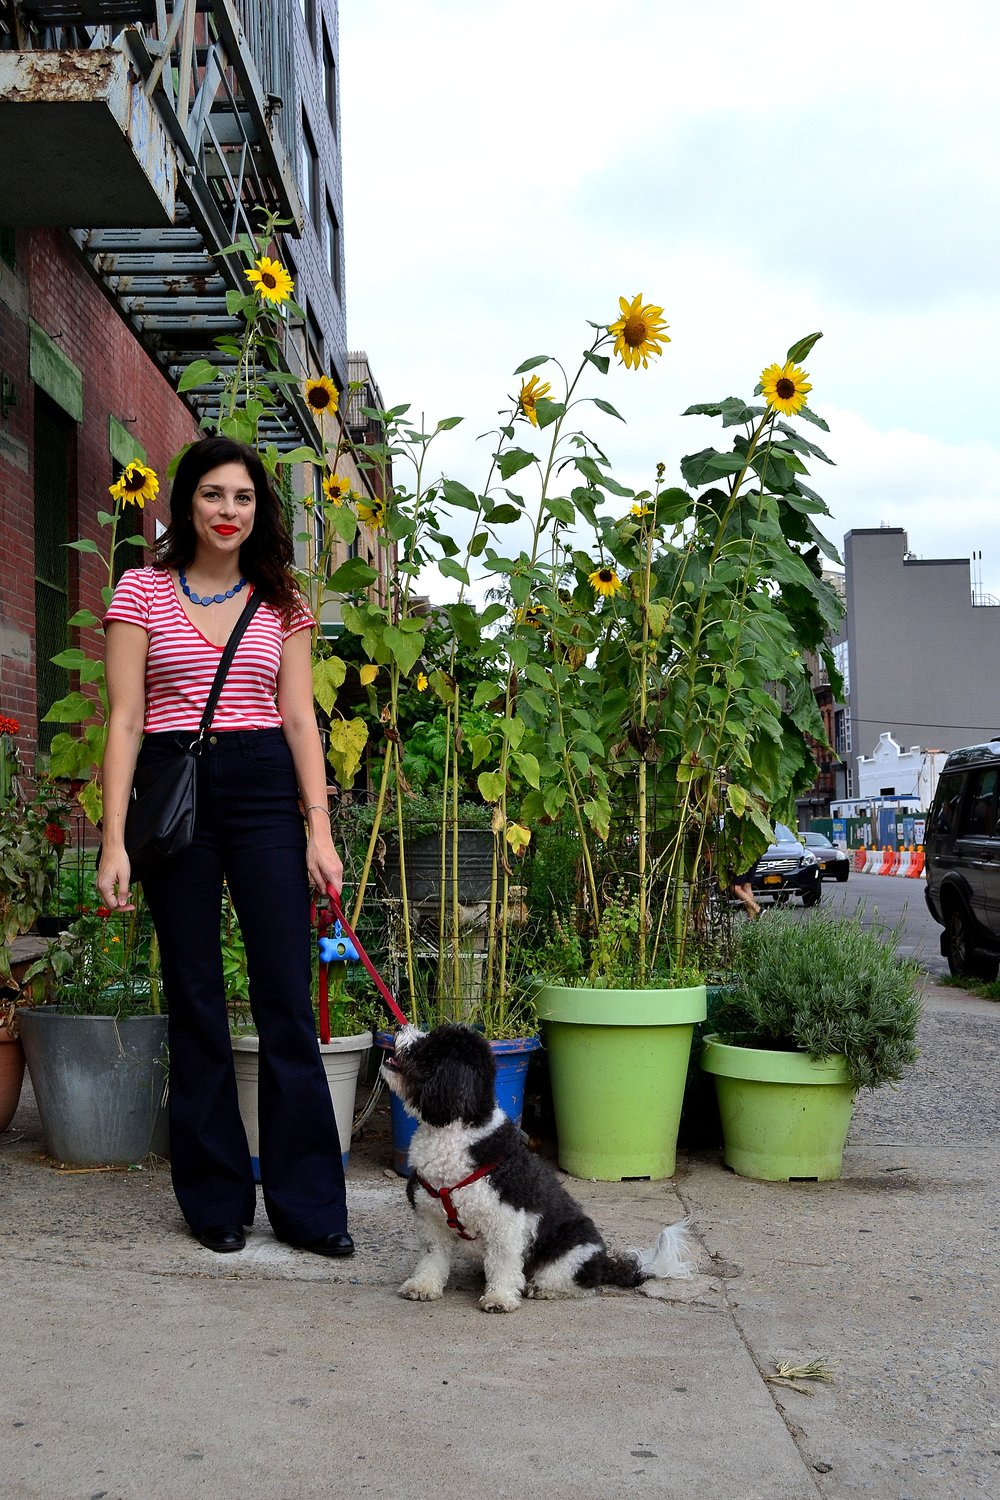 jeans: Highline Collective/ tee: Free People/ crossbody bag: Brooklyn Industries/ booties: Zara/ necklace: Forever 21